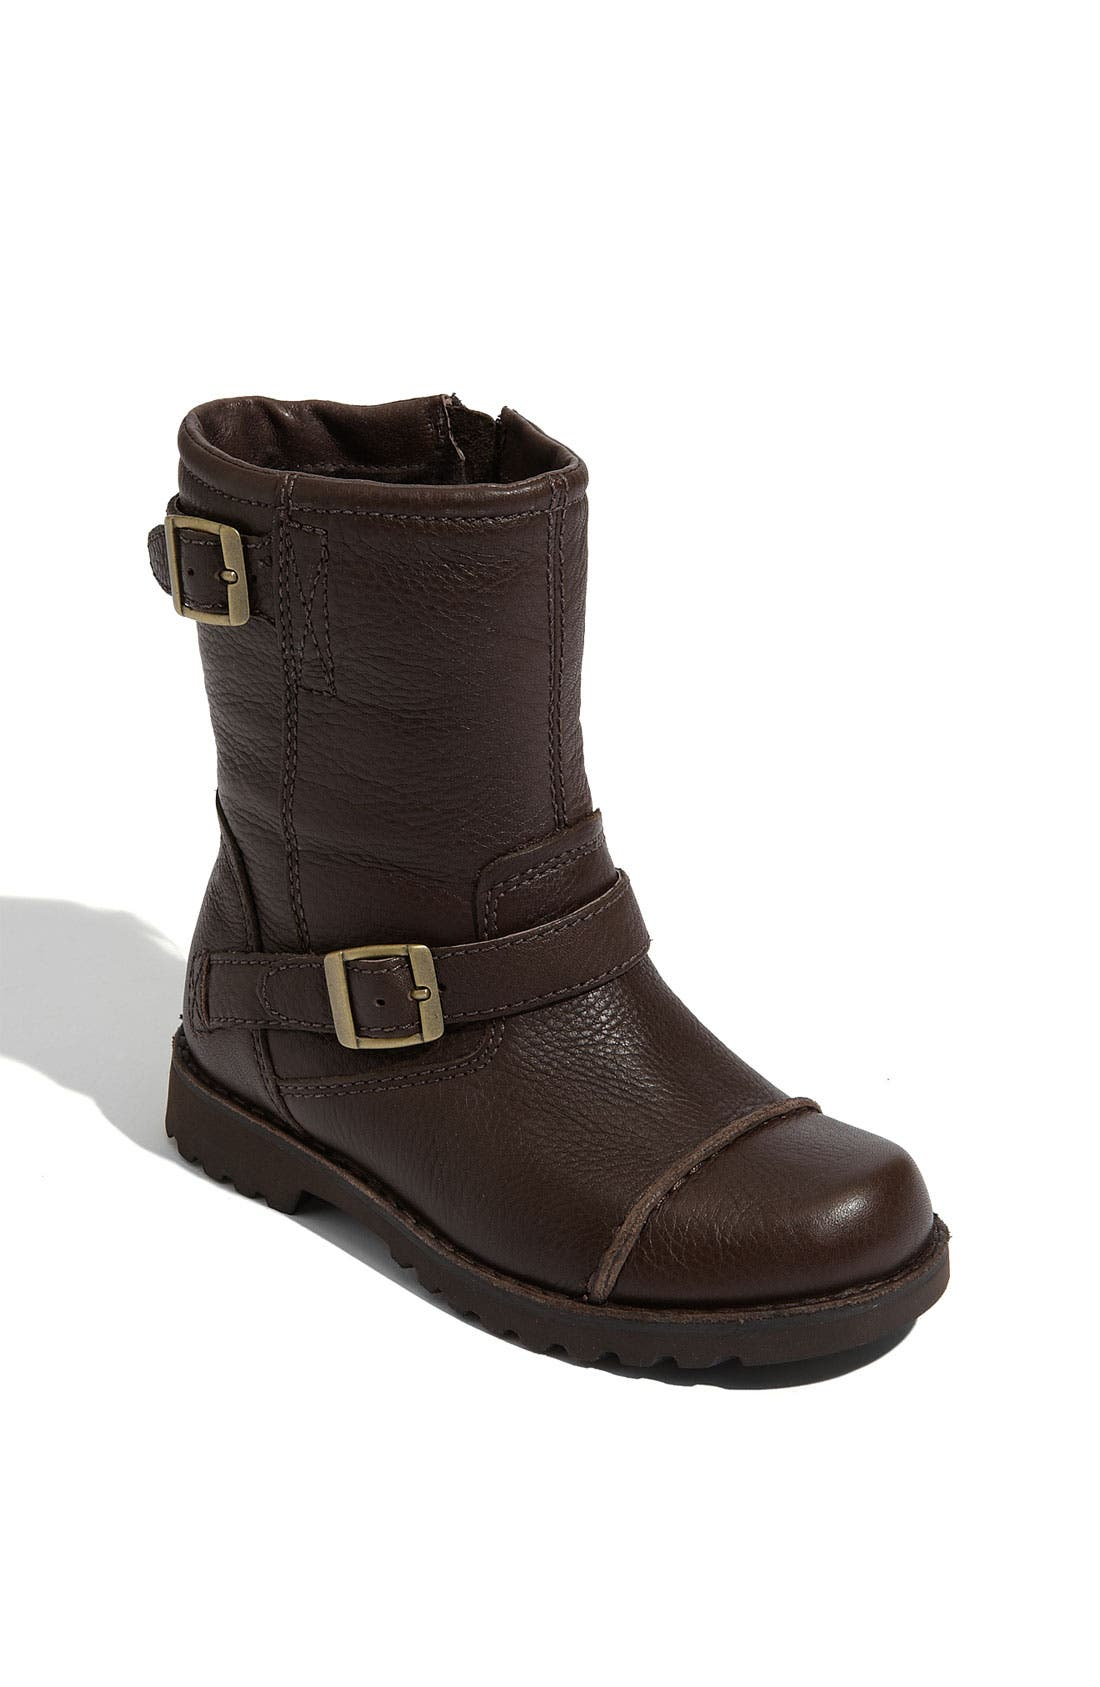 Main Image - UGG® Australia 'Cowen' Boot (Toddler, Little Kid & Big Kid)